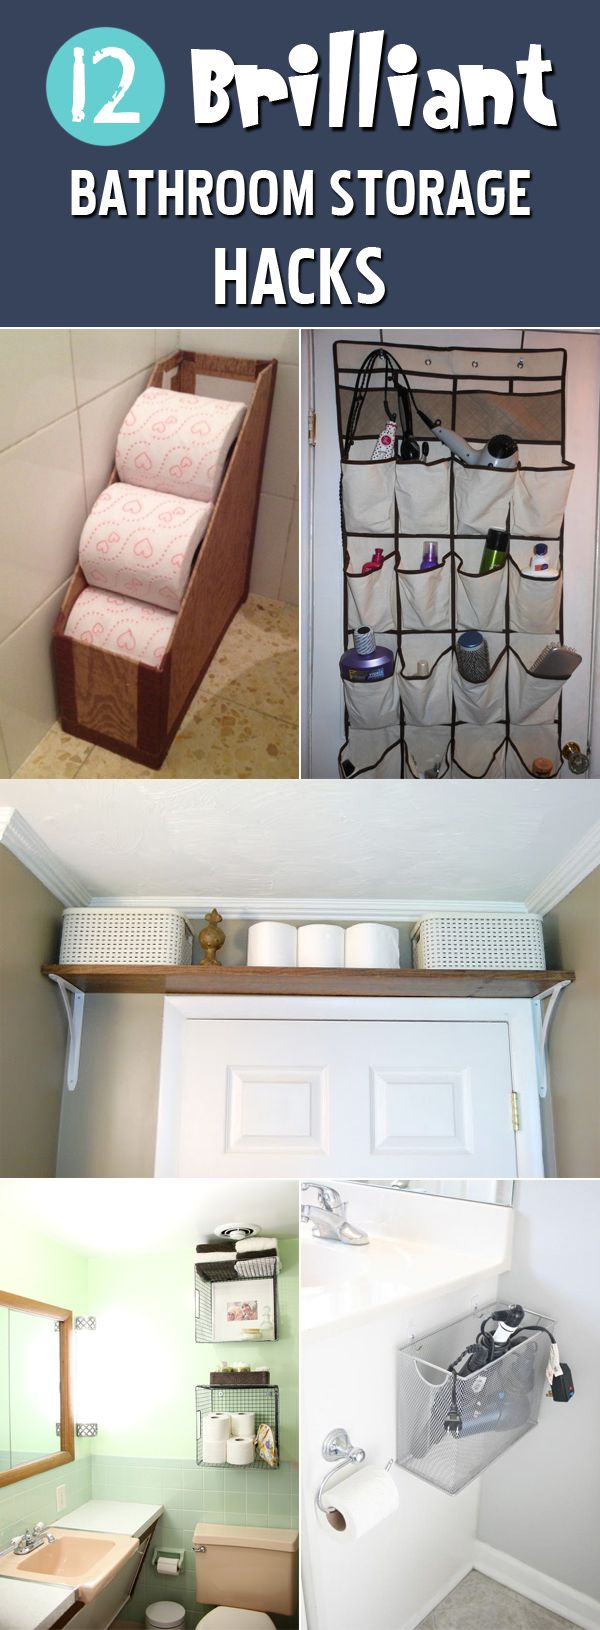 Try these insanely clever bathroom storage hacks